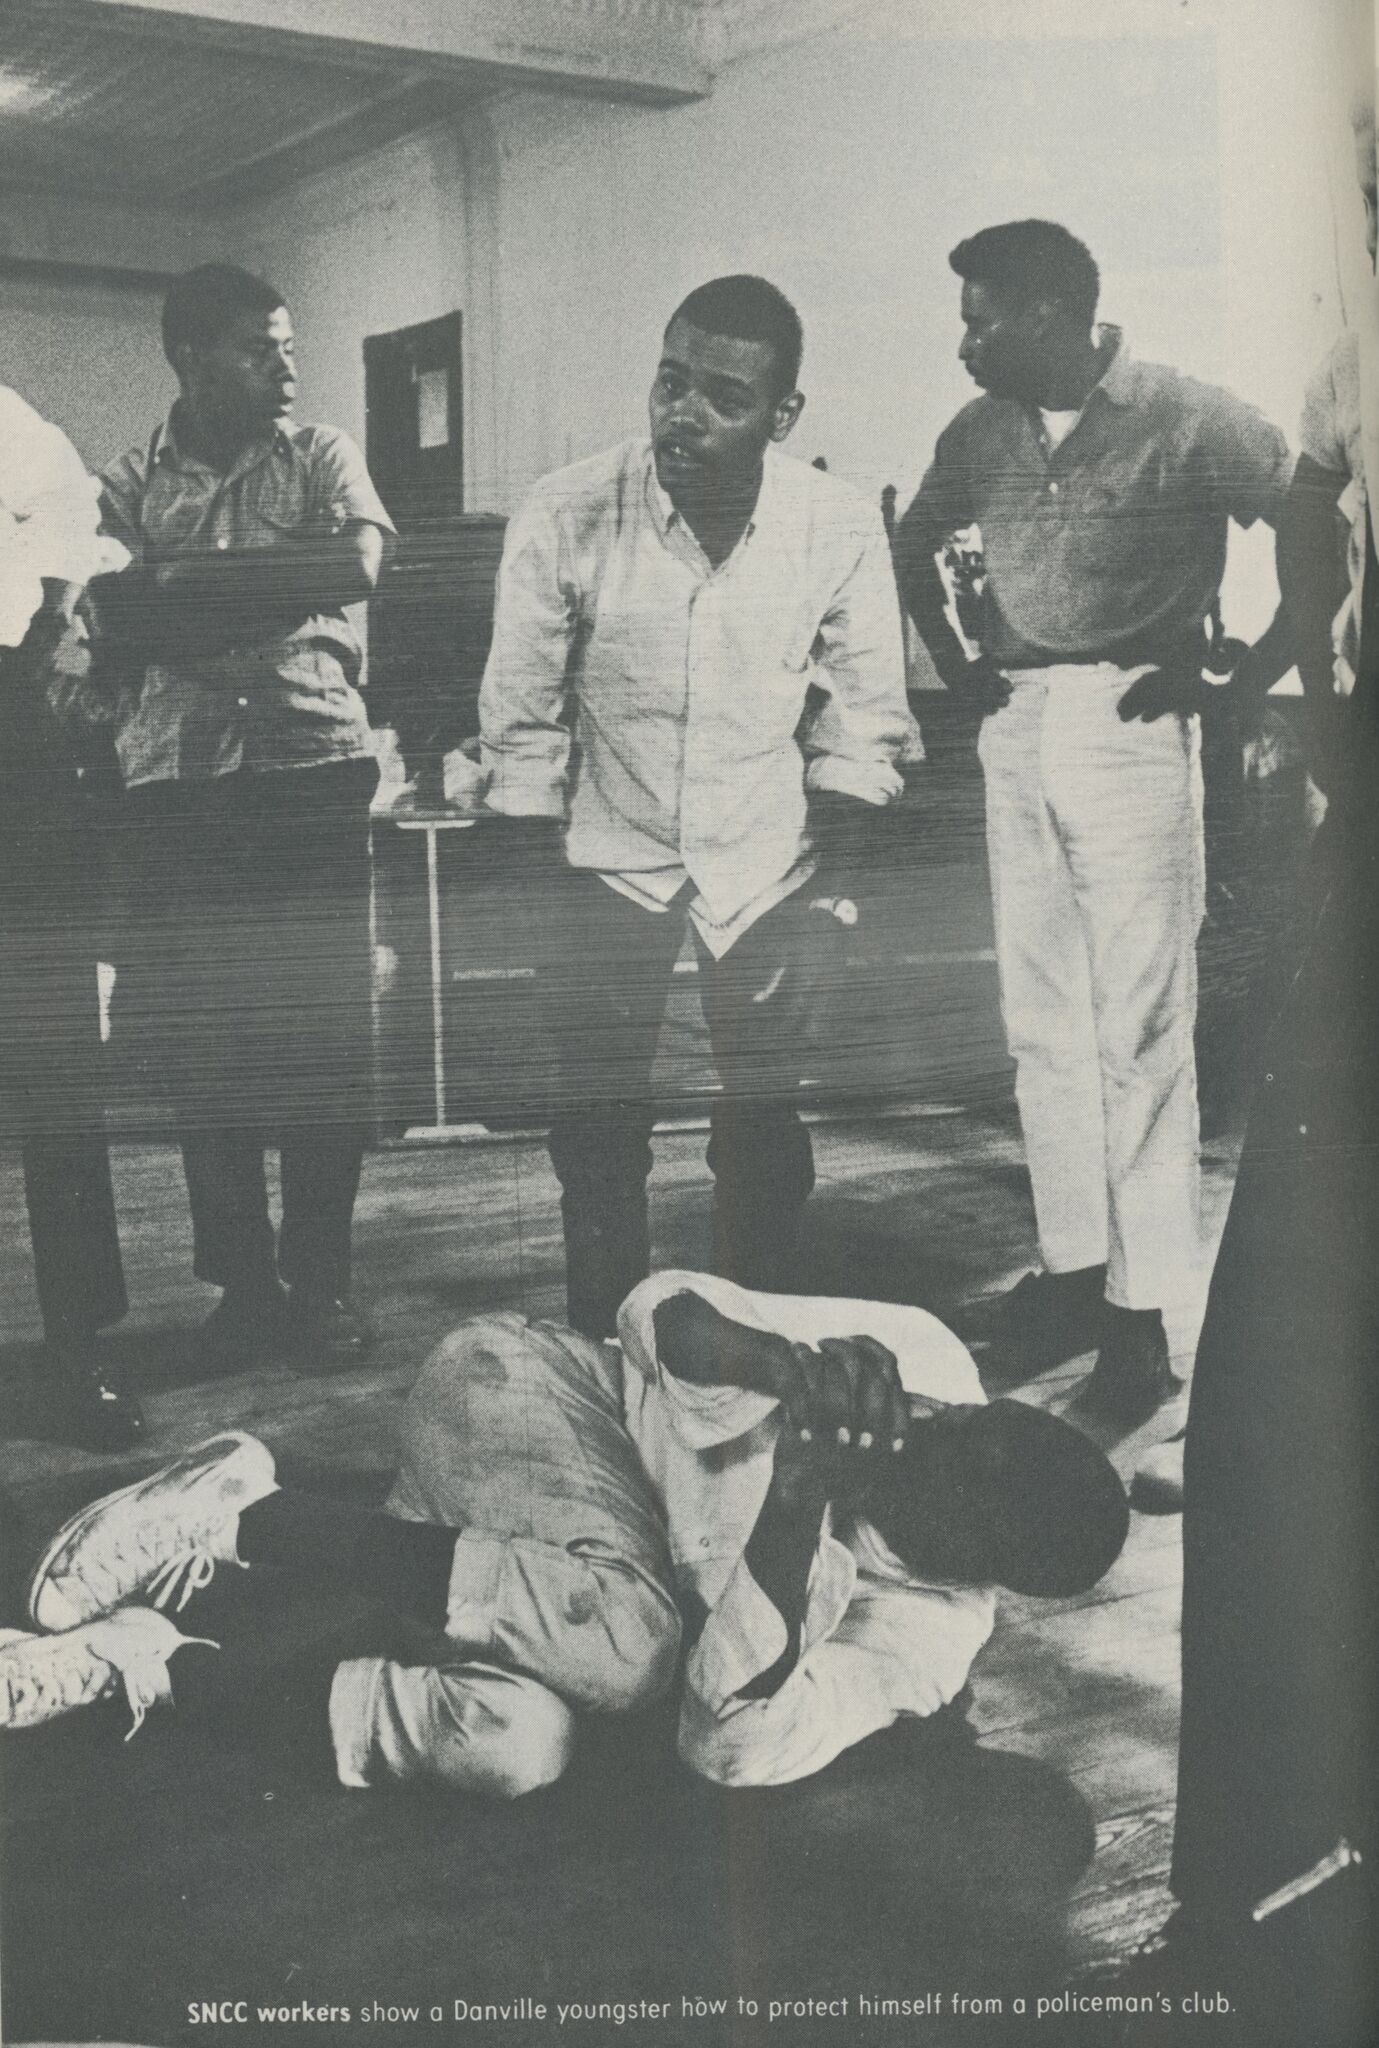 Photograph of nonresistance protest training from booklet on Danville by Dorothy Miller and Danny Lyon.  Published by the Student Nonviolent Coordinating Committee. Atlanta:  August 1963.